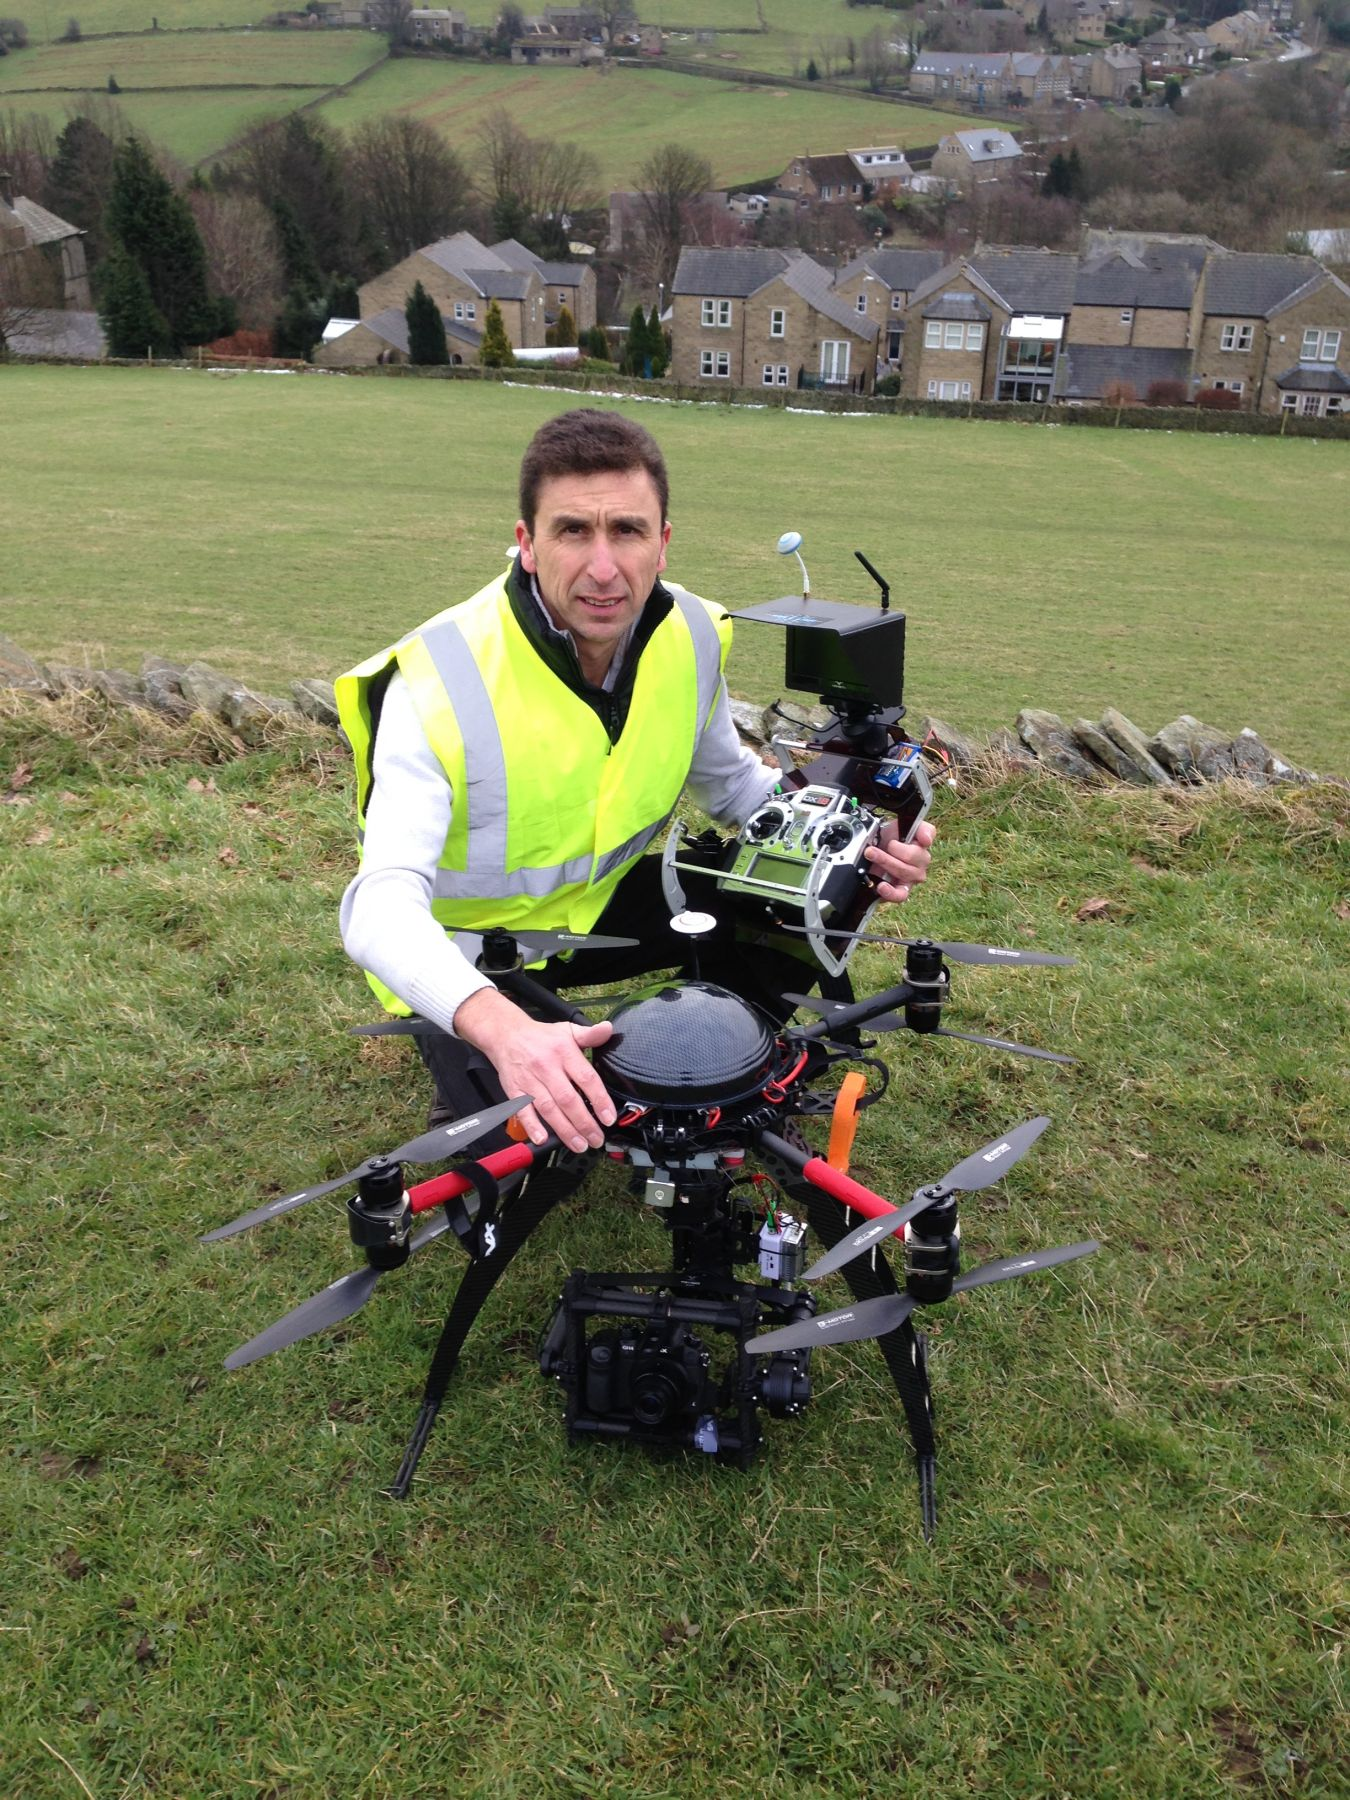 Phil Fearnley Drone pilot on BBC1 DIY SOS